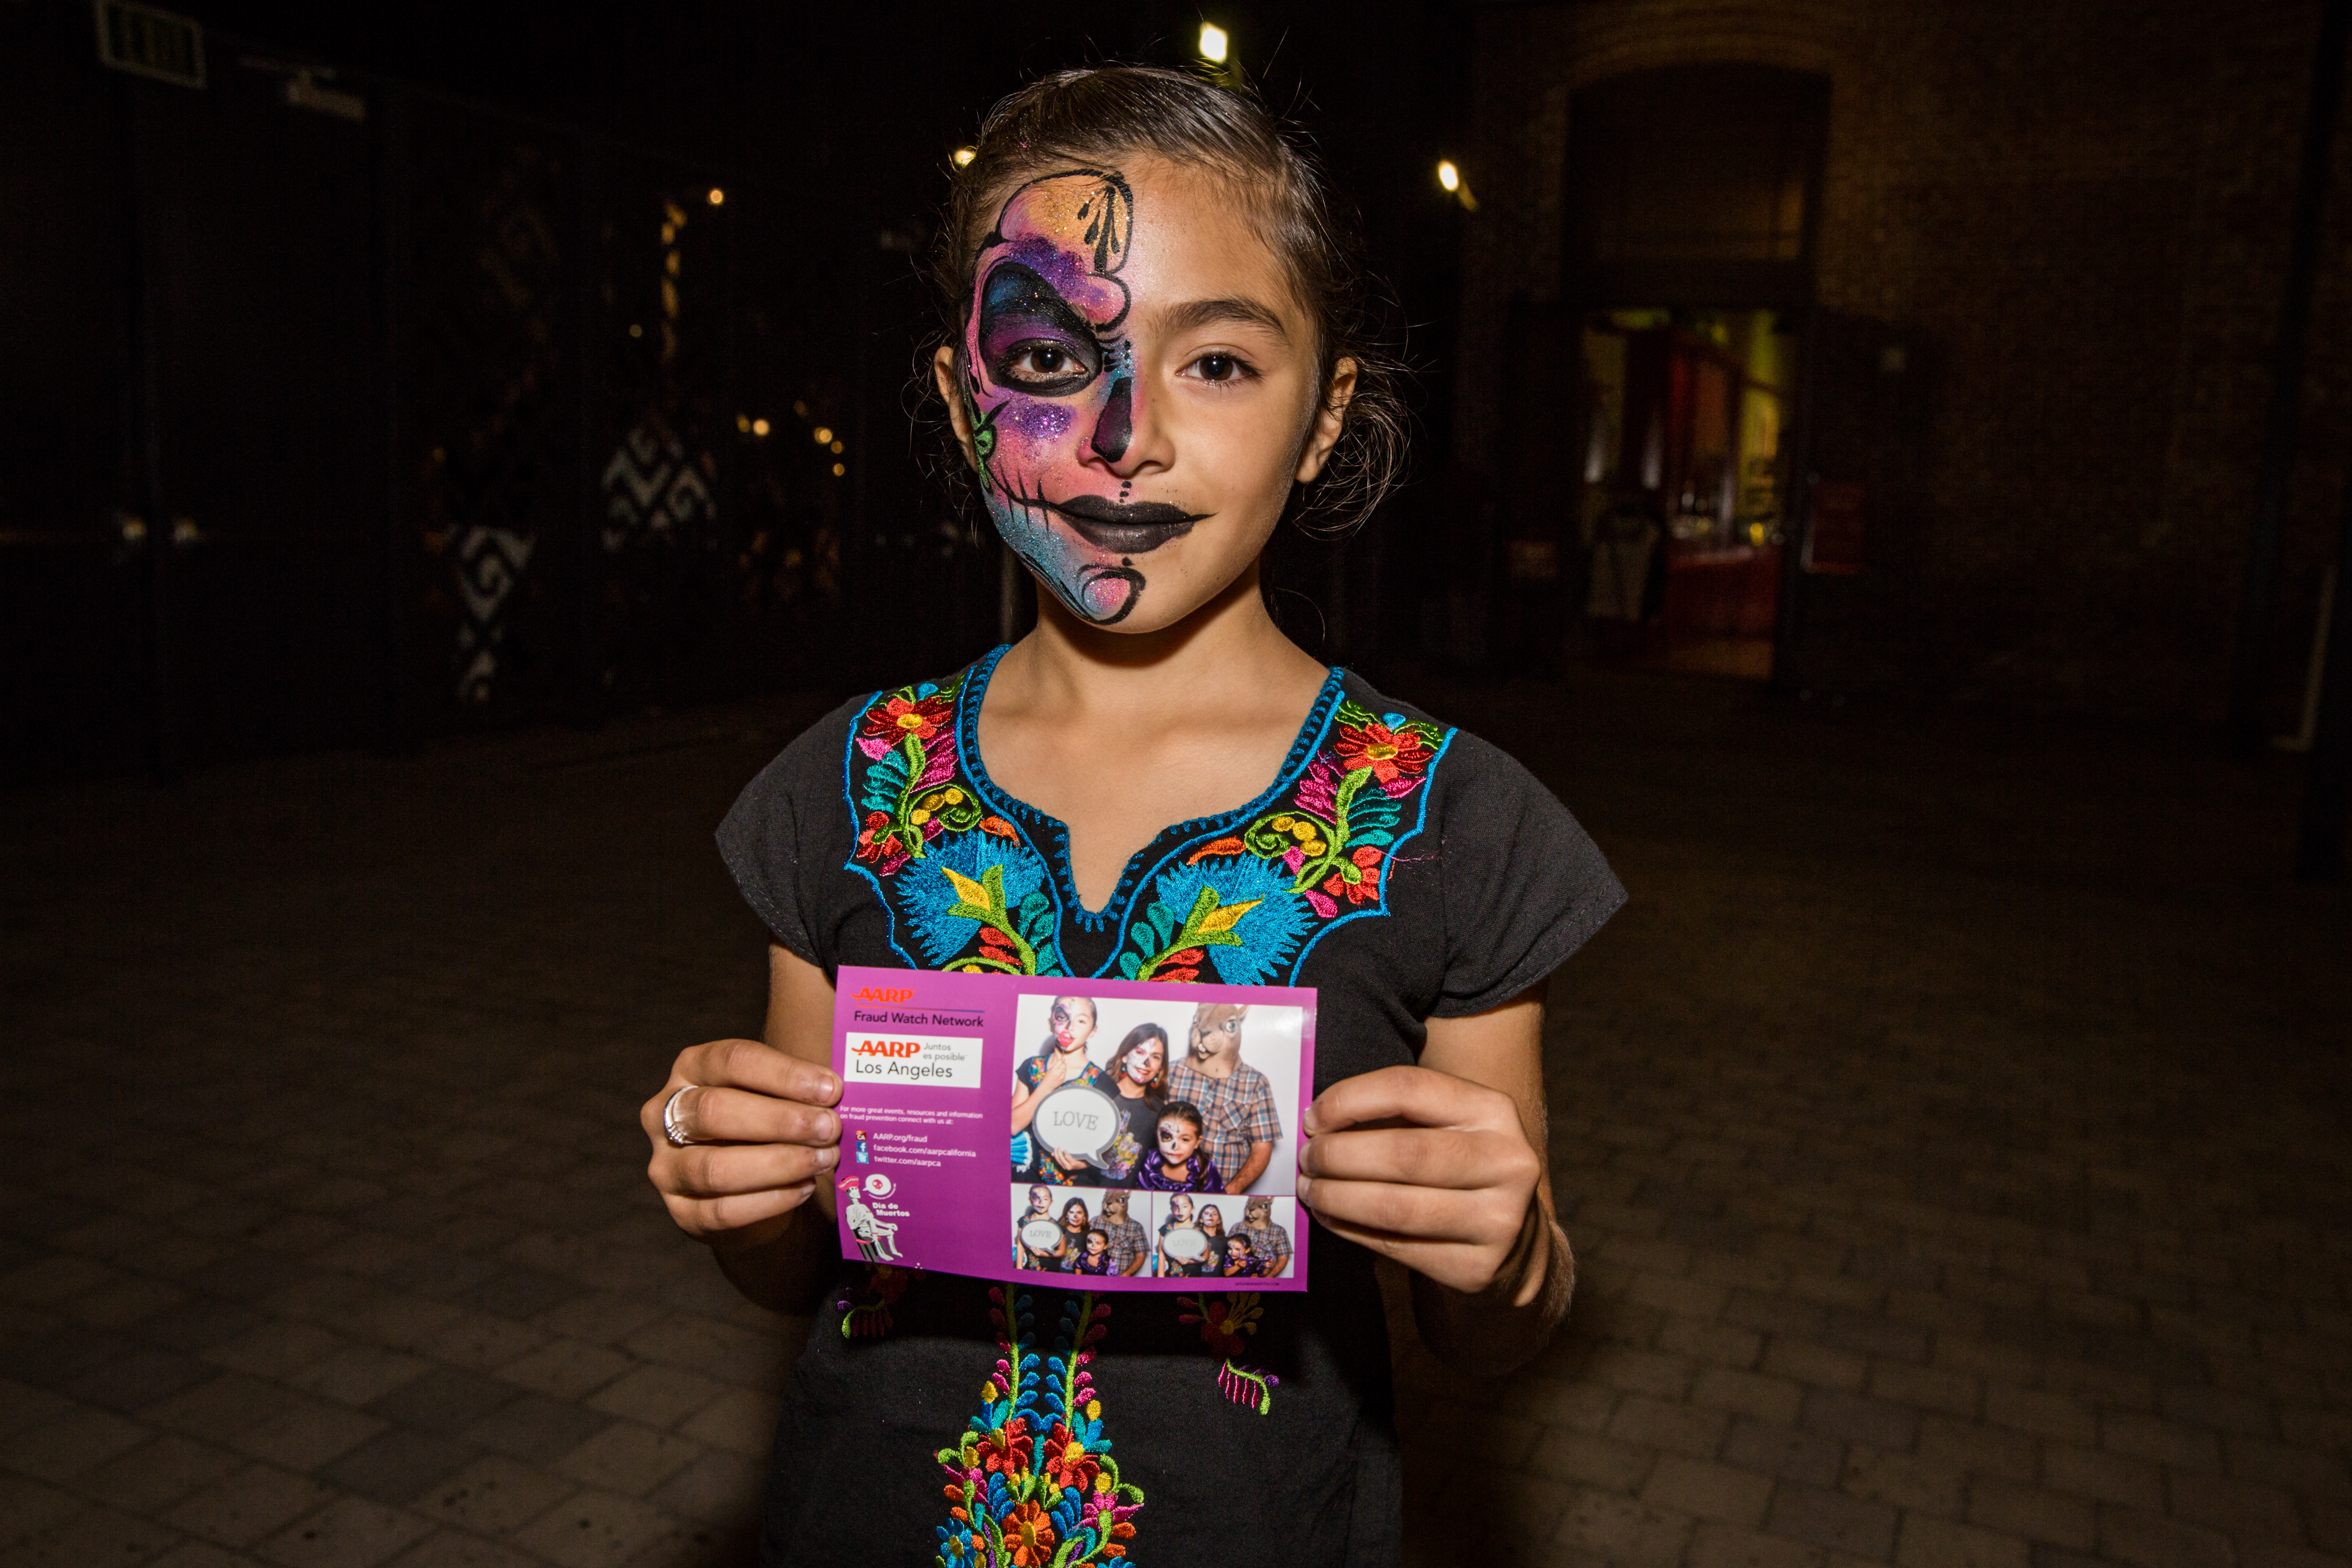 Day of the dead, face painting girl-30001204245L-30001204245L-2-30001204245L-2-30001204245L-30001204245L.jpg